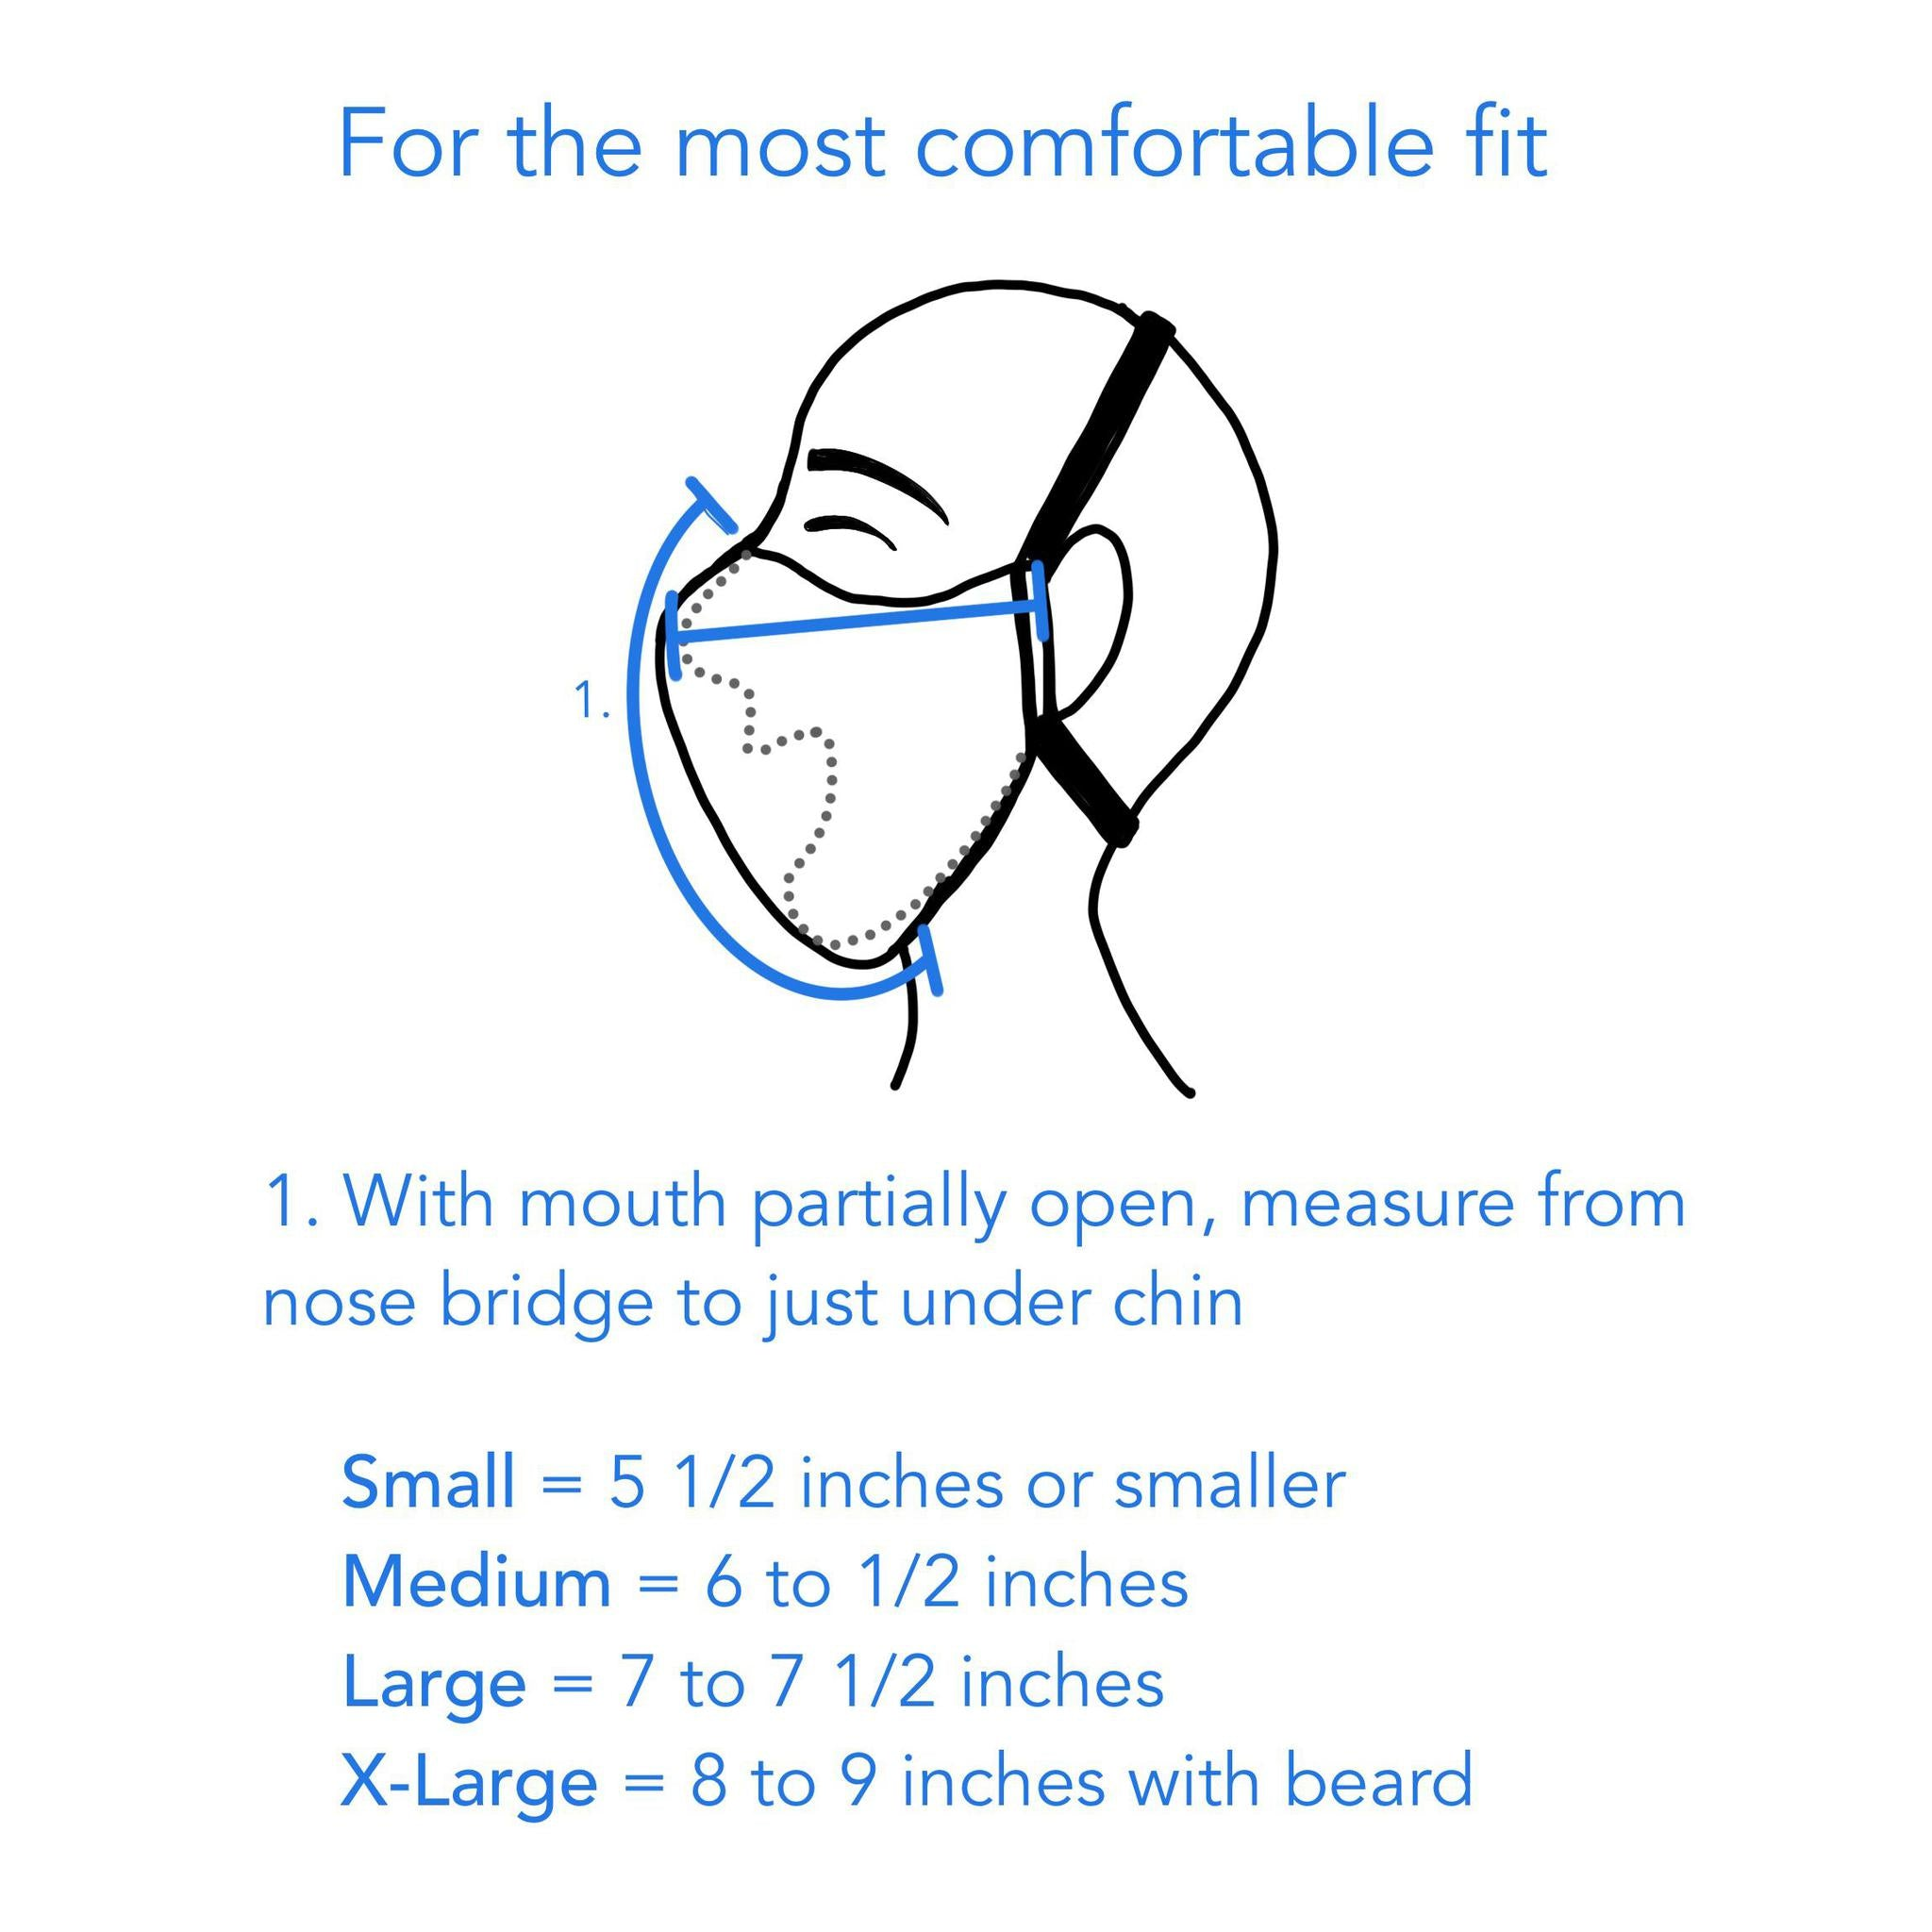 For best fit, measure from top of nose to just under chin - thehandmadeshowroom.com